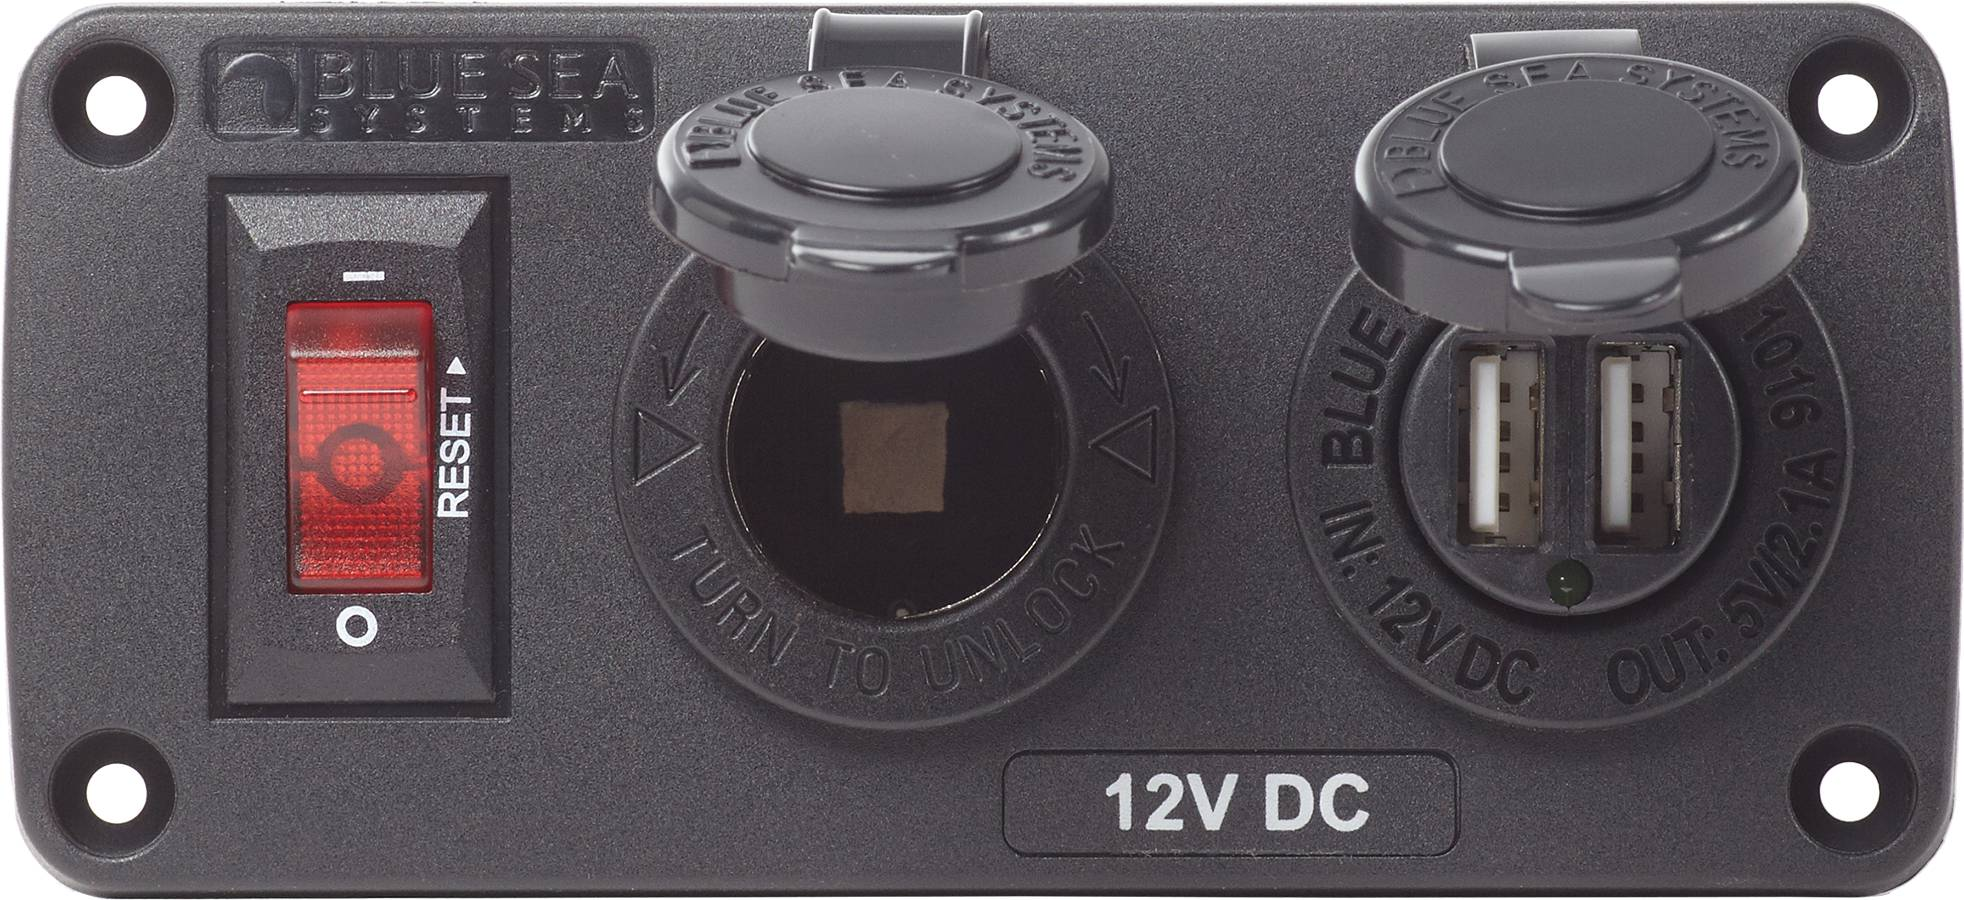 Belowdeck Panel 15a Circuit Breaker 12v Socket 21a Dual Usb Charger Product Image